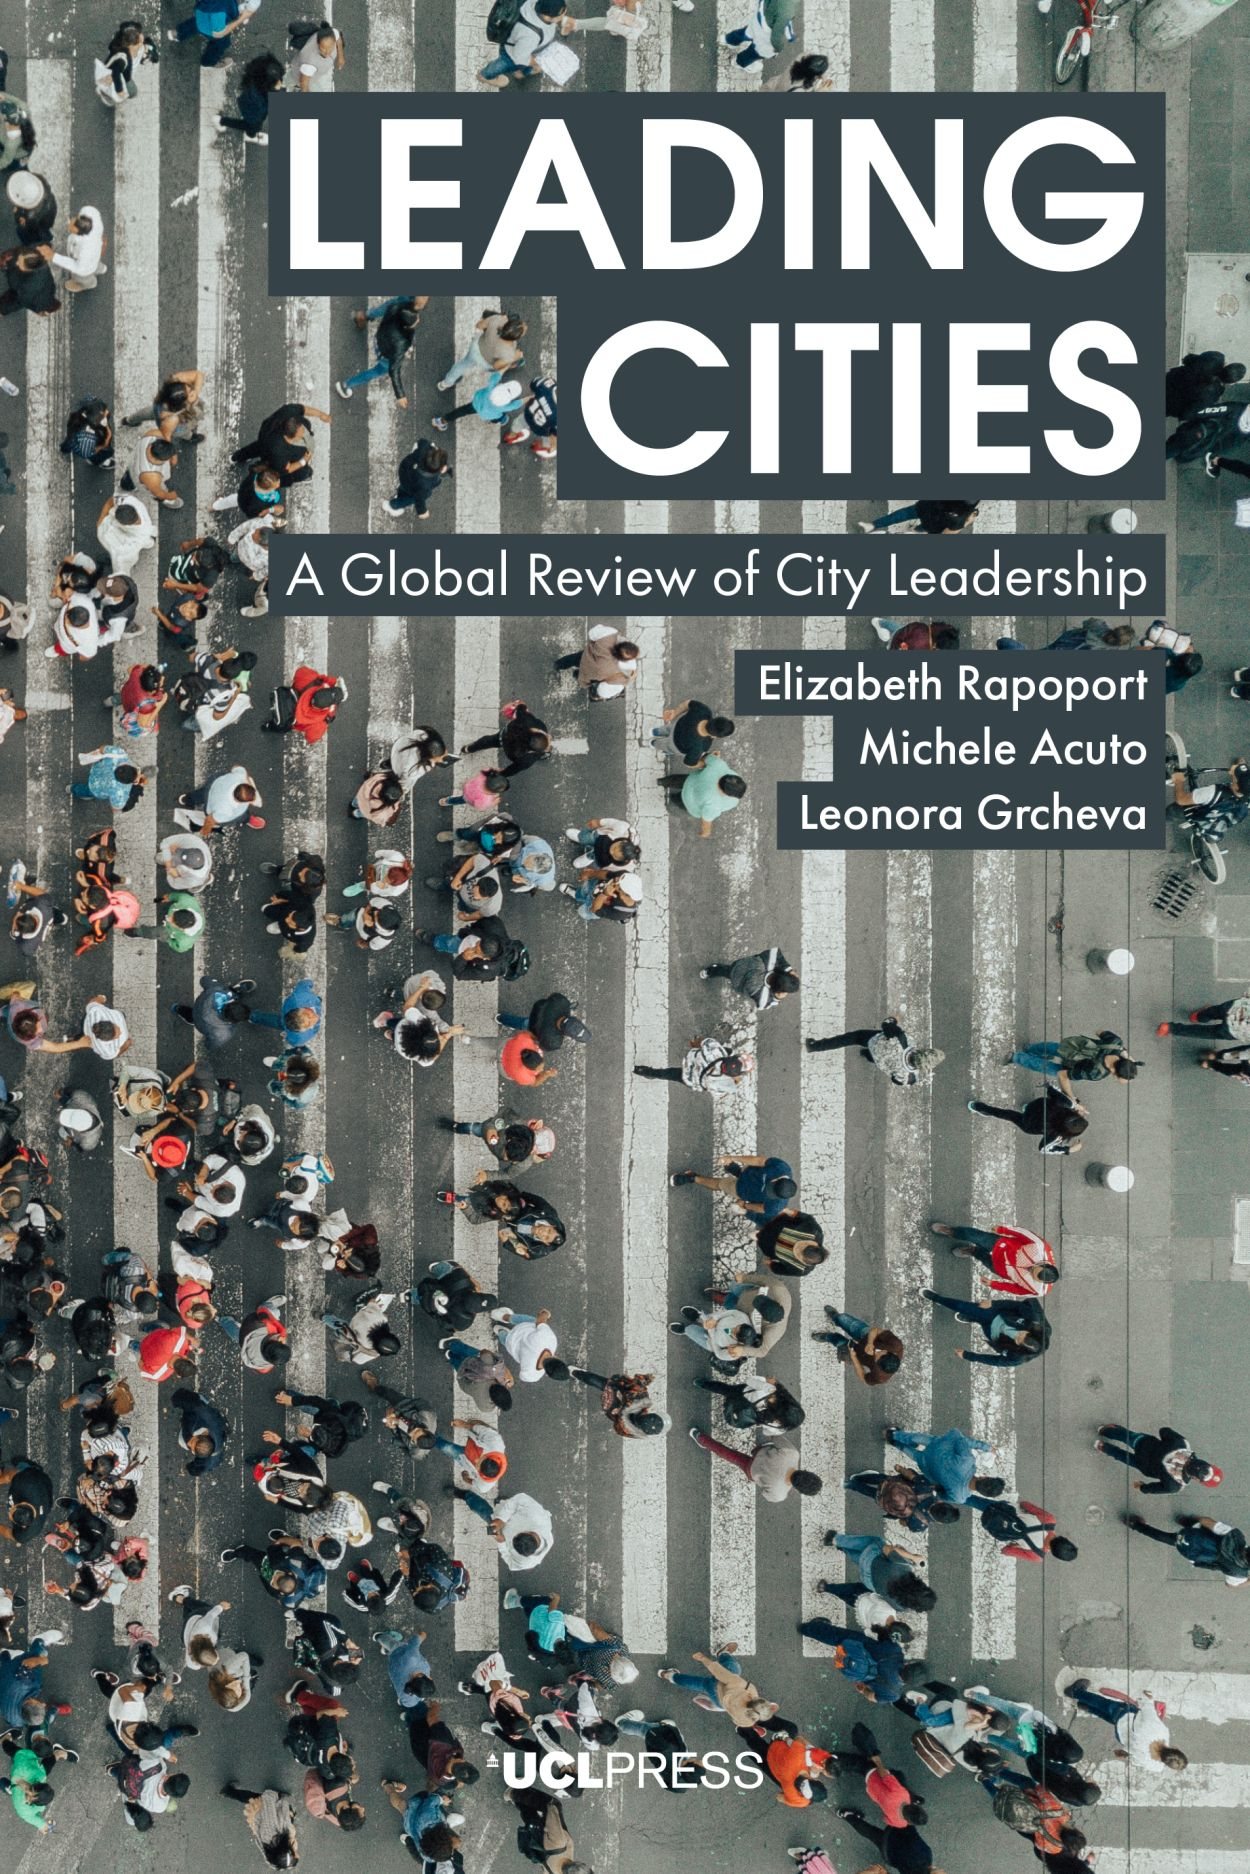 Leading Cities: A Global Review of City Leadership